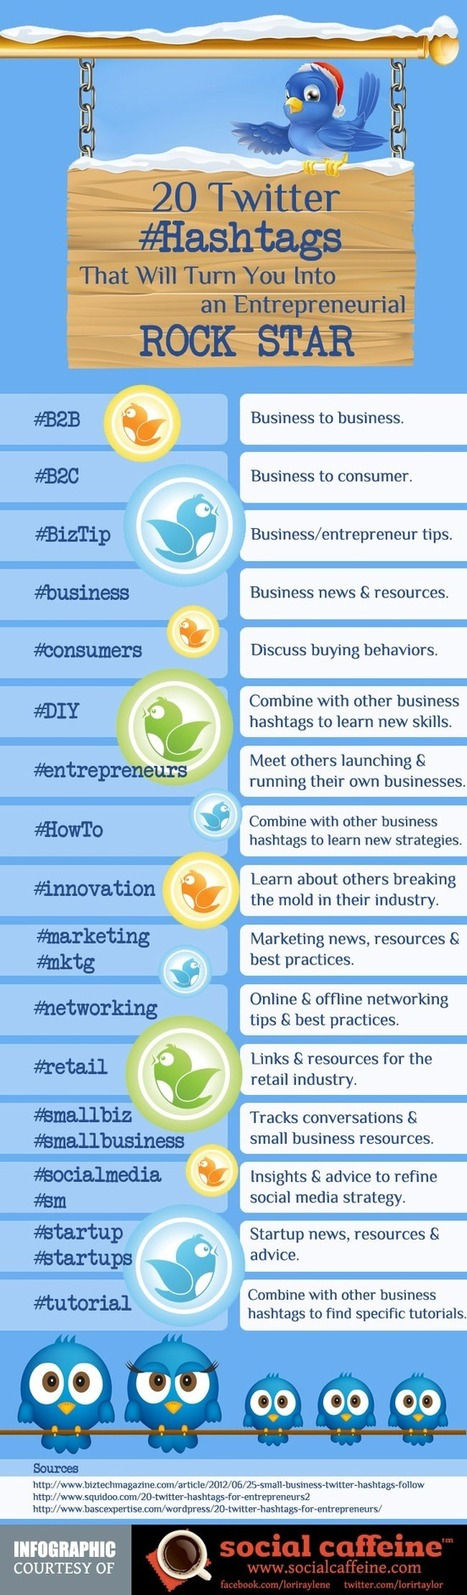 20 Twitter Hashtags That Will Turn You into an Entrepreneurial Rock Star | marketing | Scoop.it